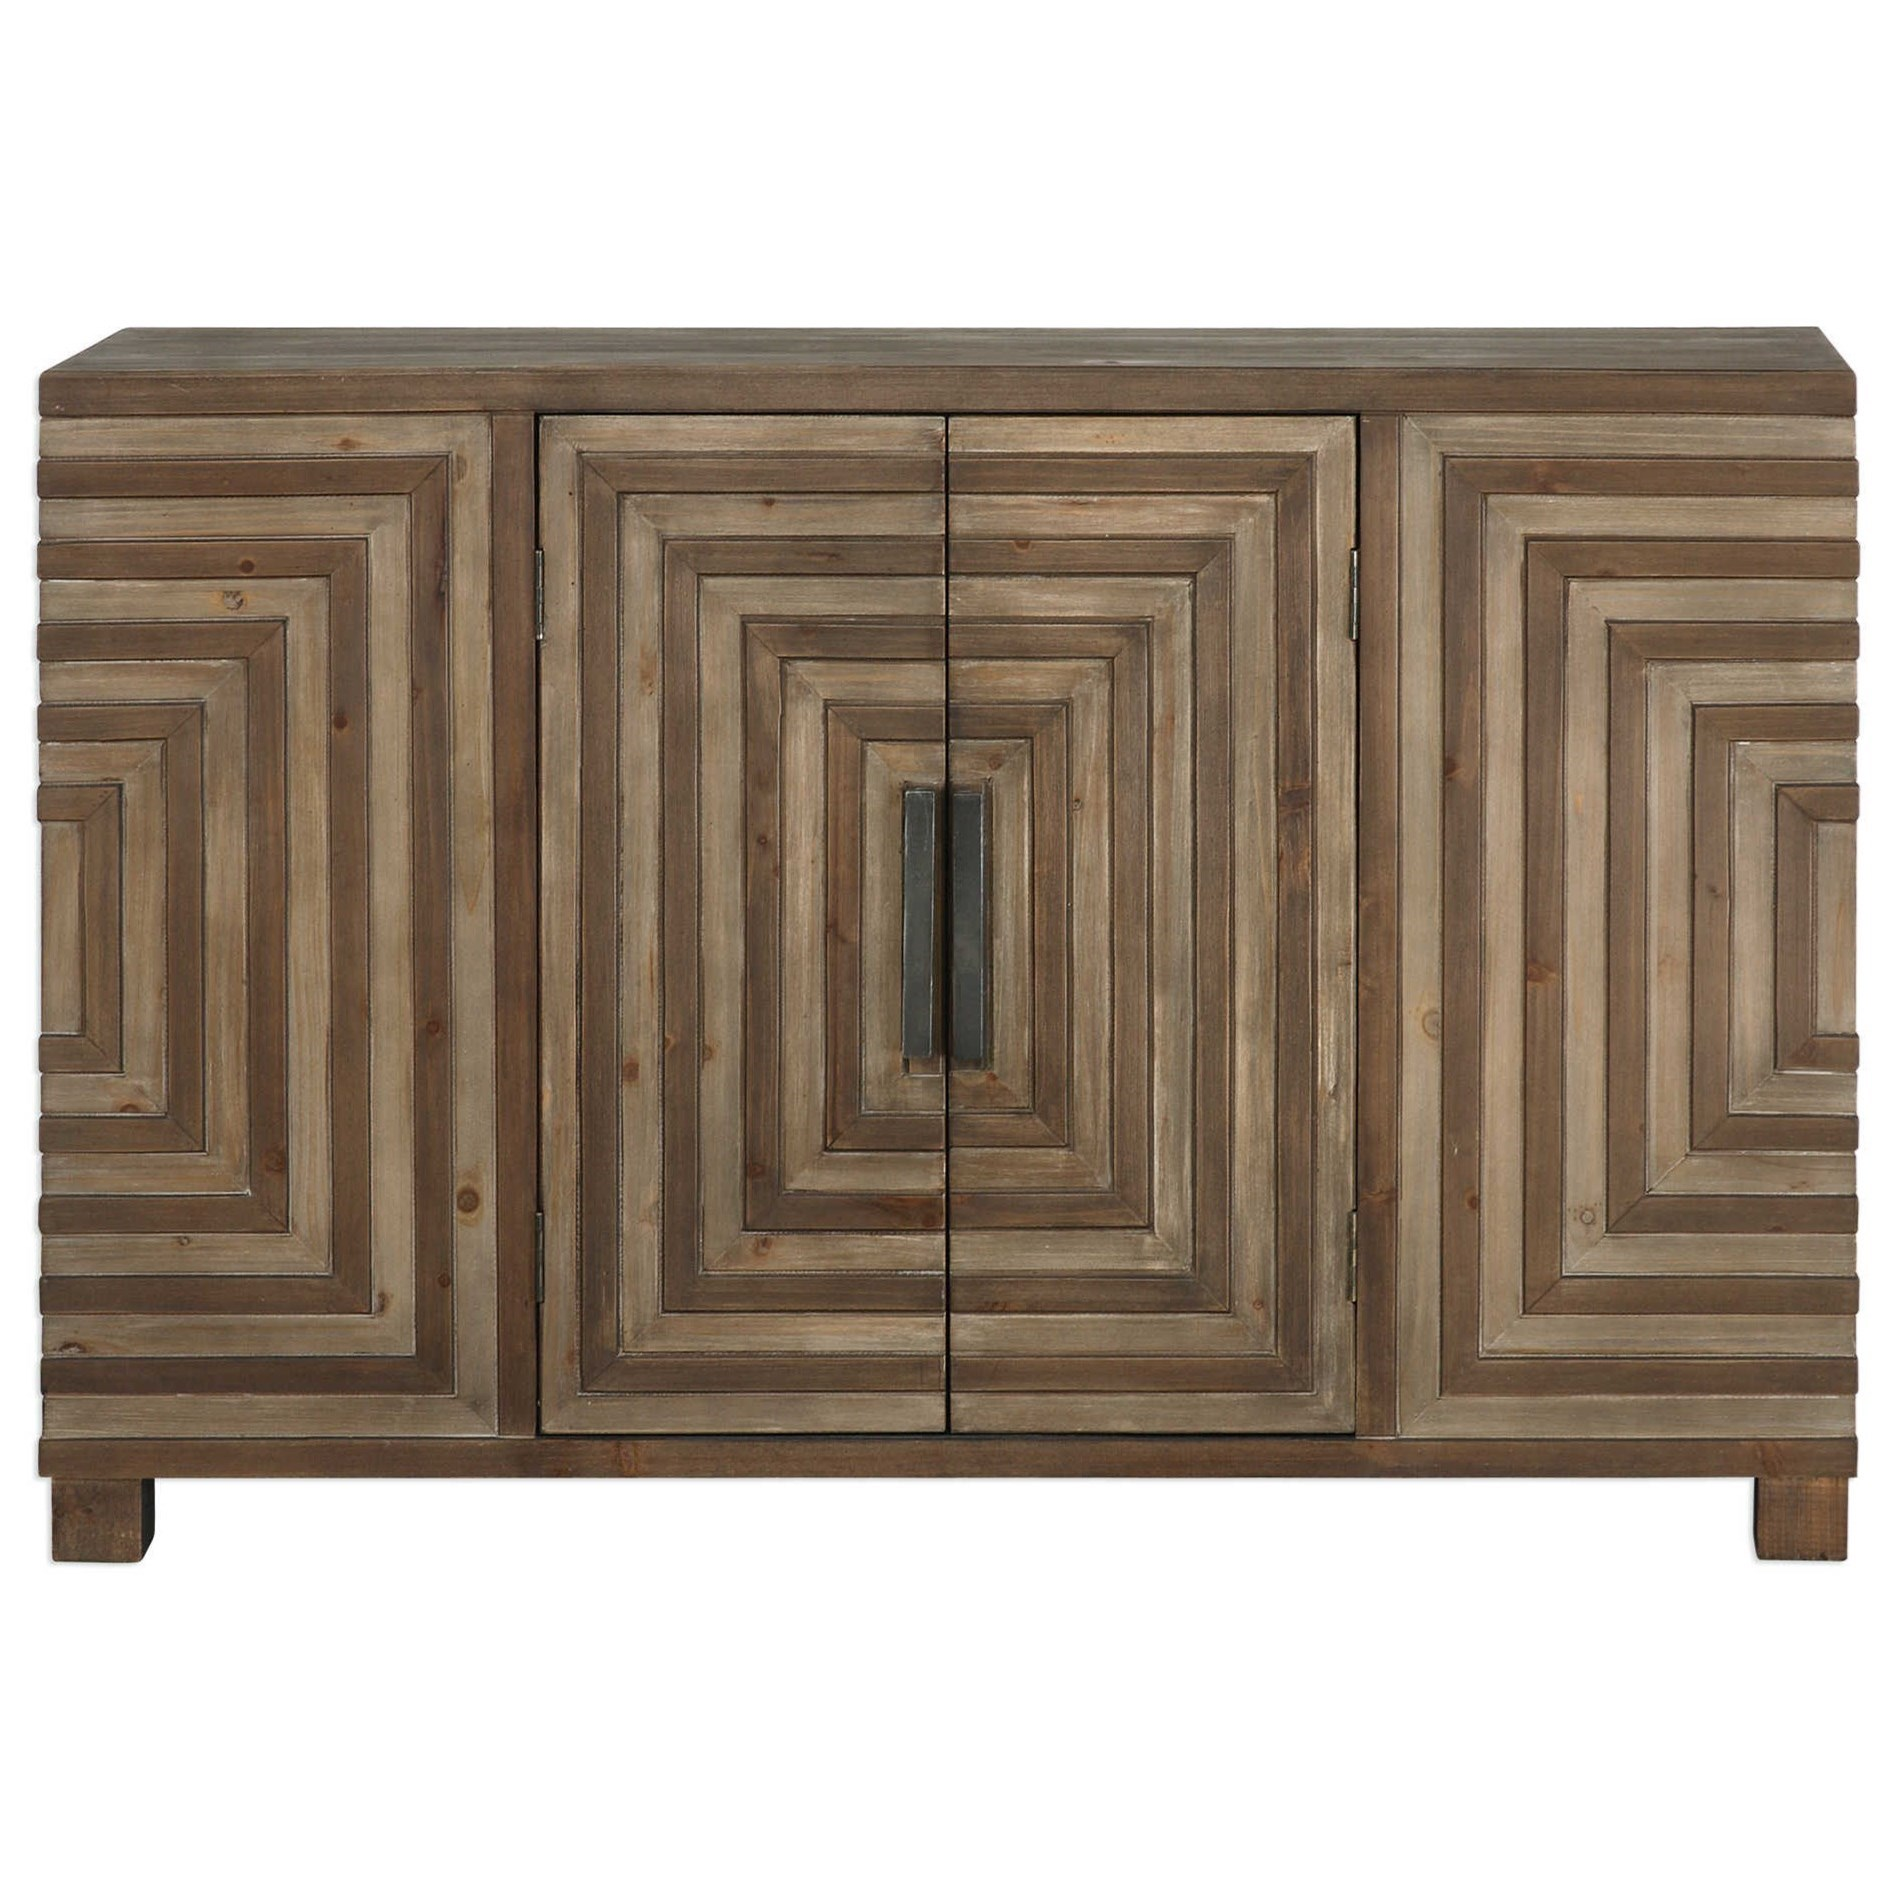 Accent Furniture - Occasional Tables Layton Geometric Console Cabinet by Uttermost at Mueller Furniture